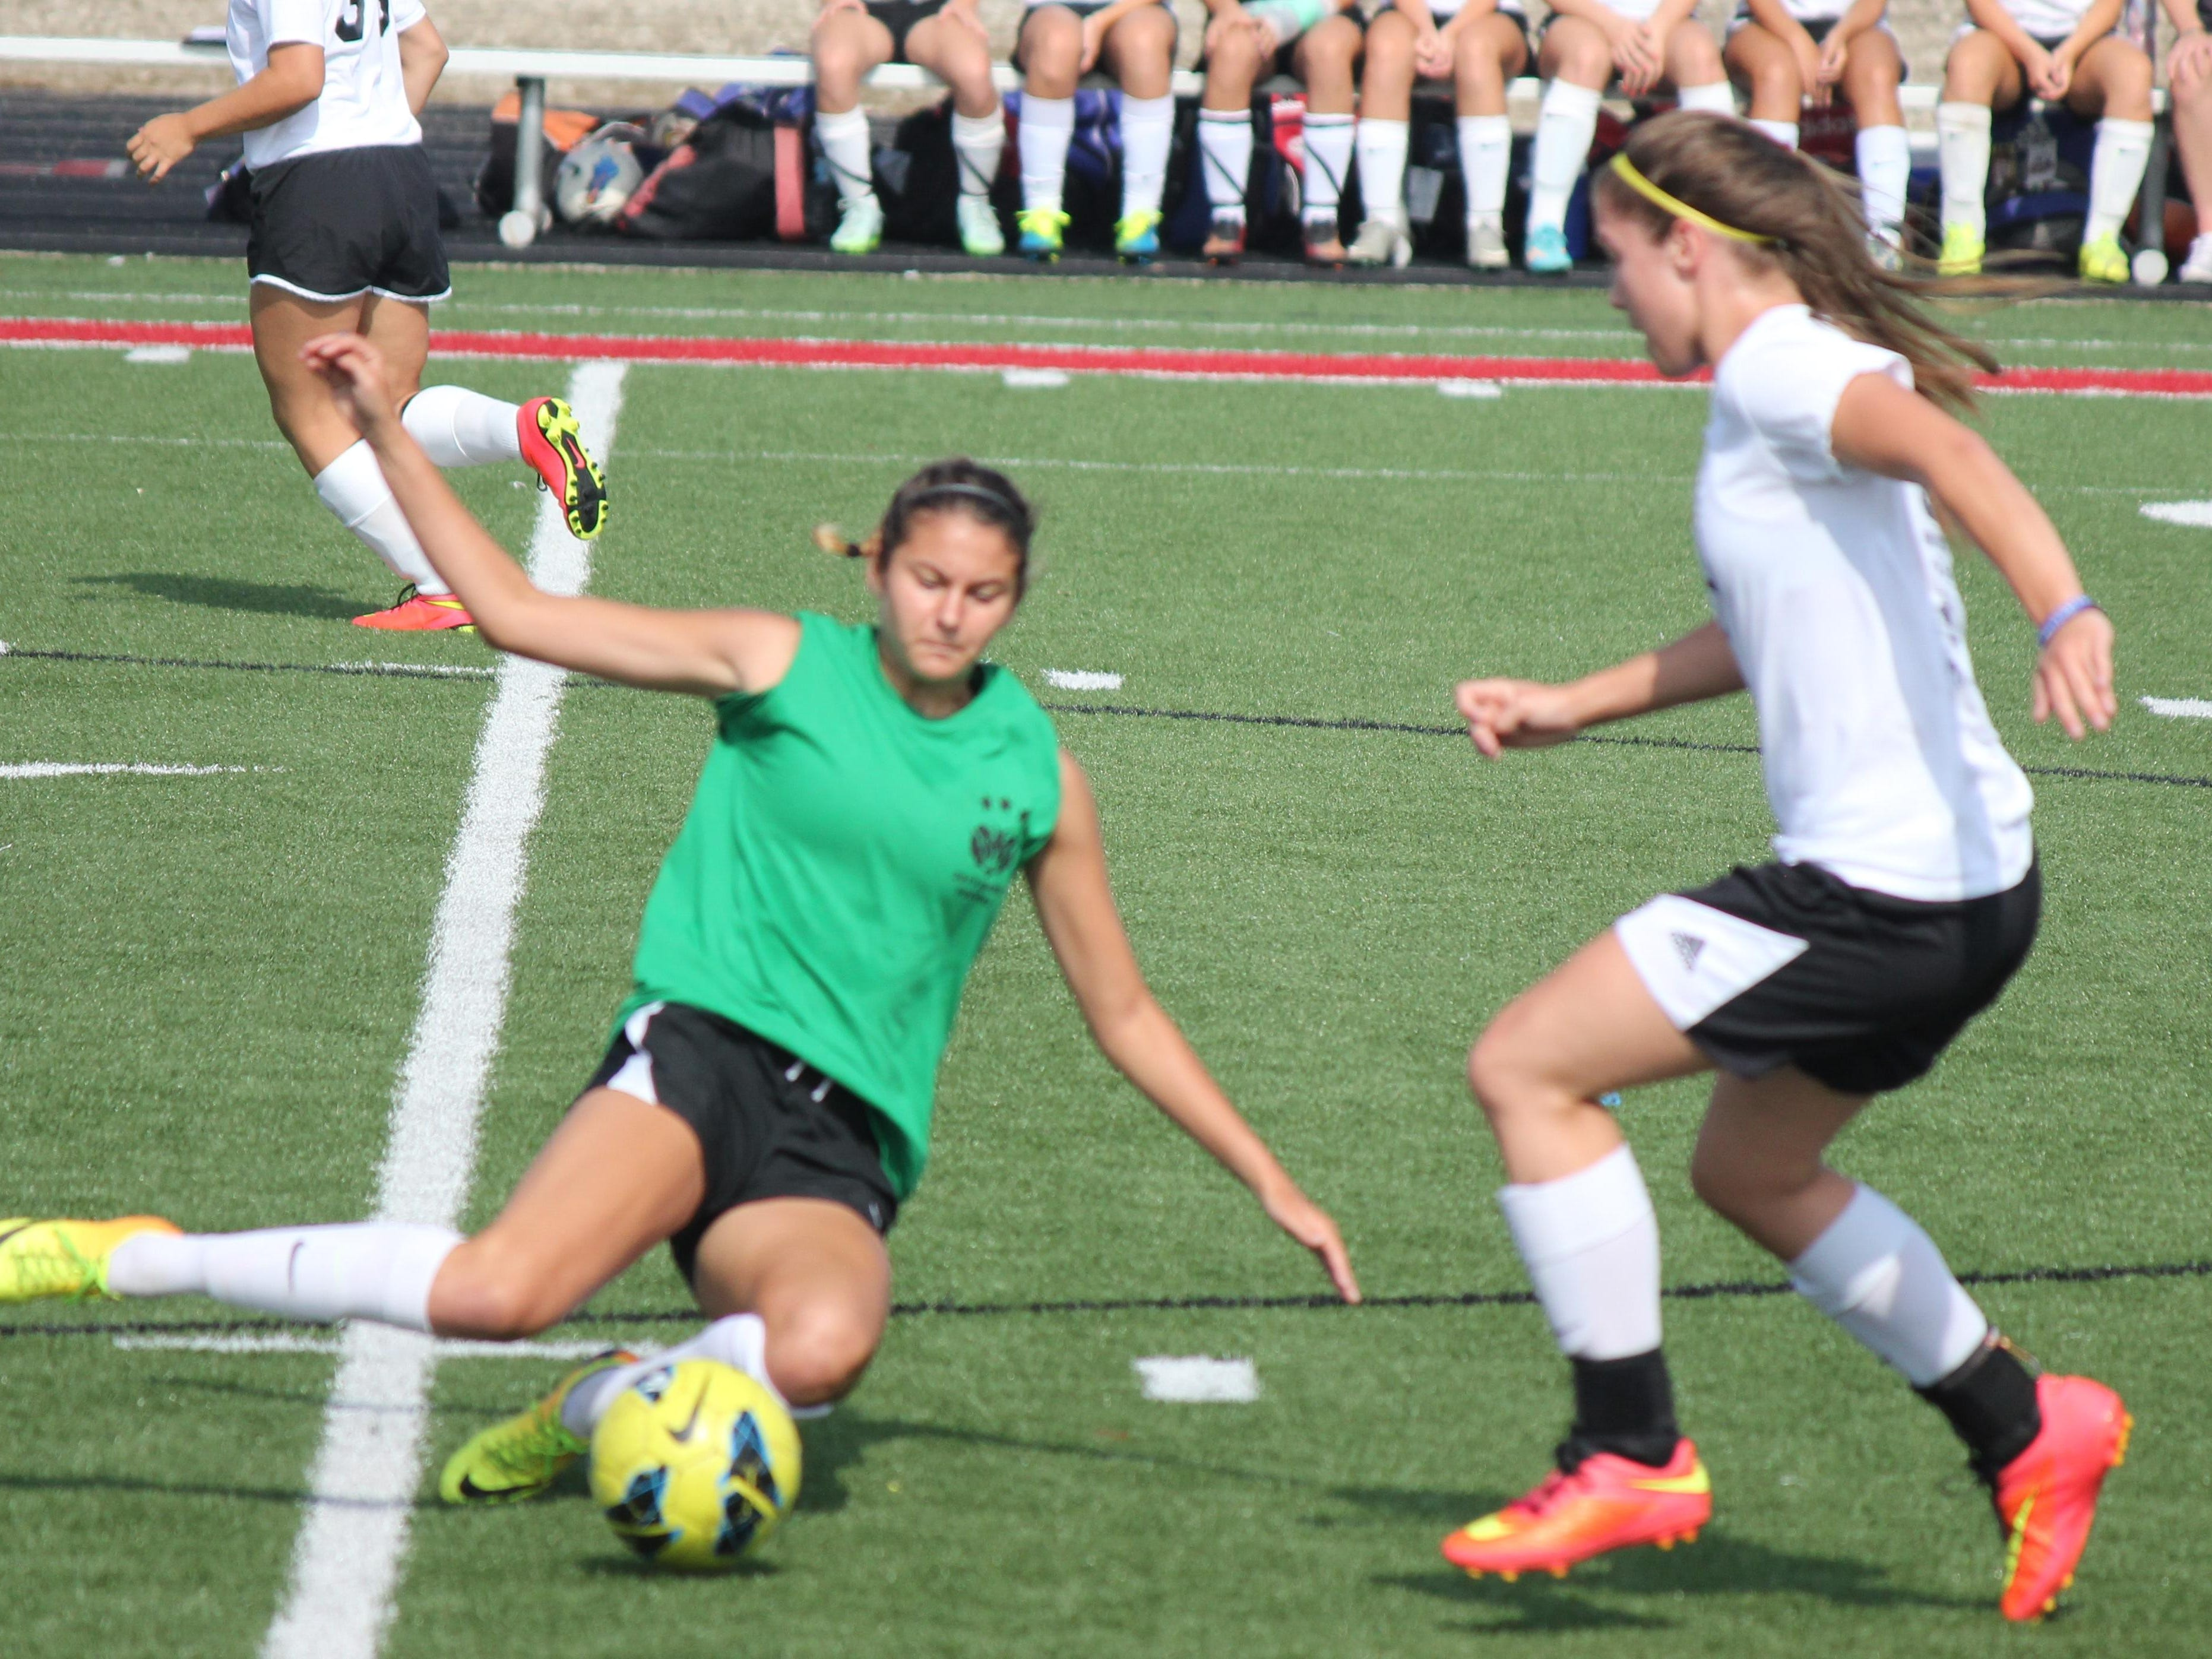 Badin High School's Malia Berkely executes a slide tackle against her McAuley opponent in July 11 scrimmages at Fairfield High School.